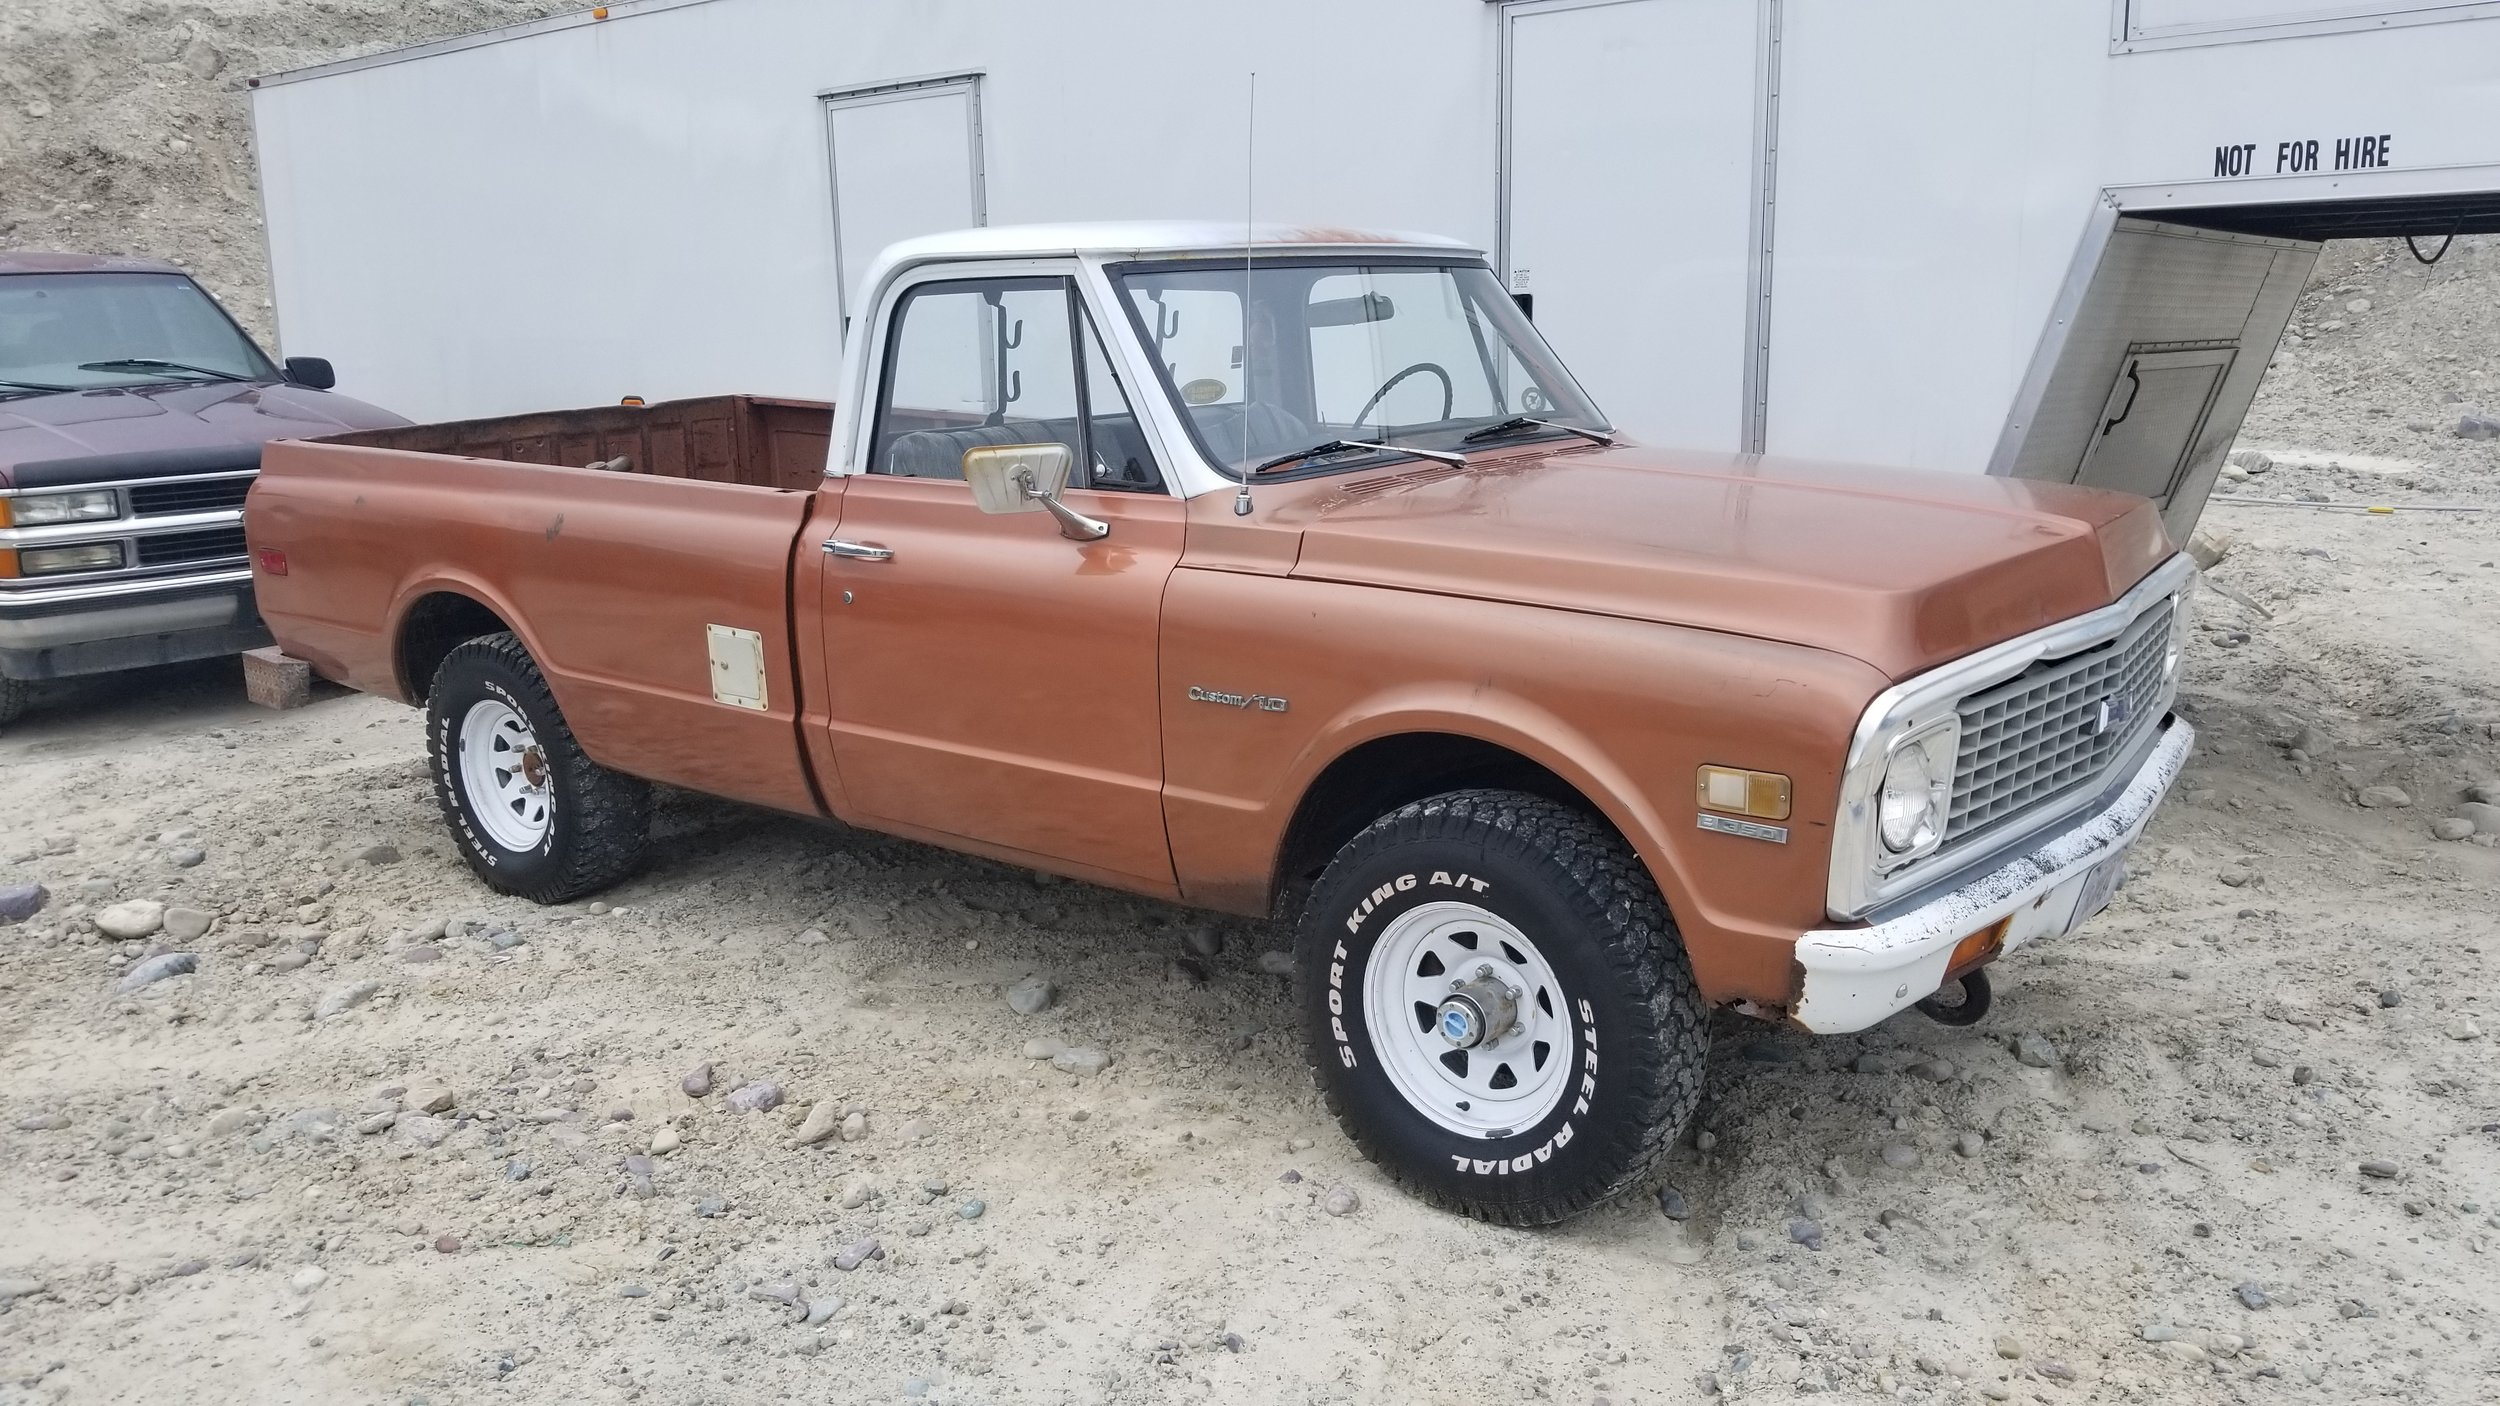 1972 Chevrolet 4WD - Just a good 'ole farm truck, factory 4WD, four speed, factory 350ci V8. Nice project.